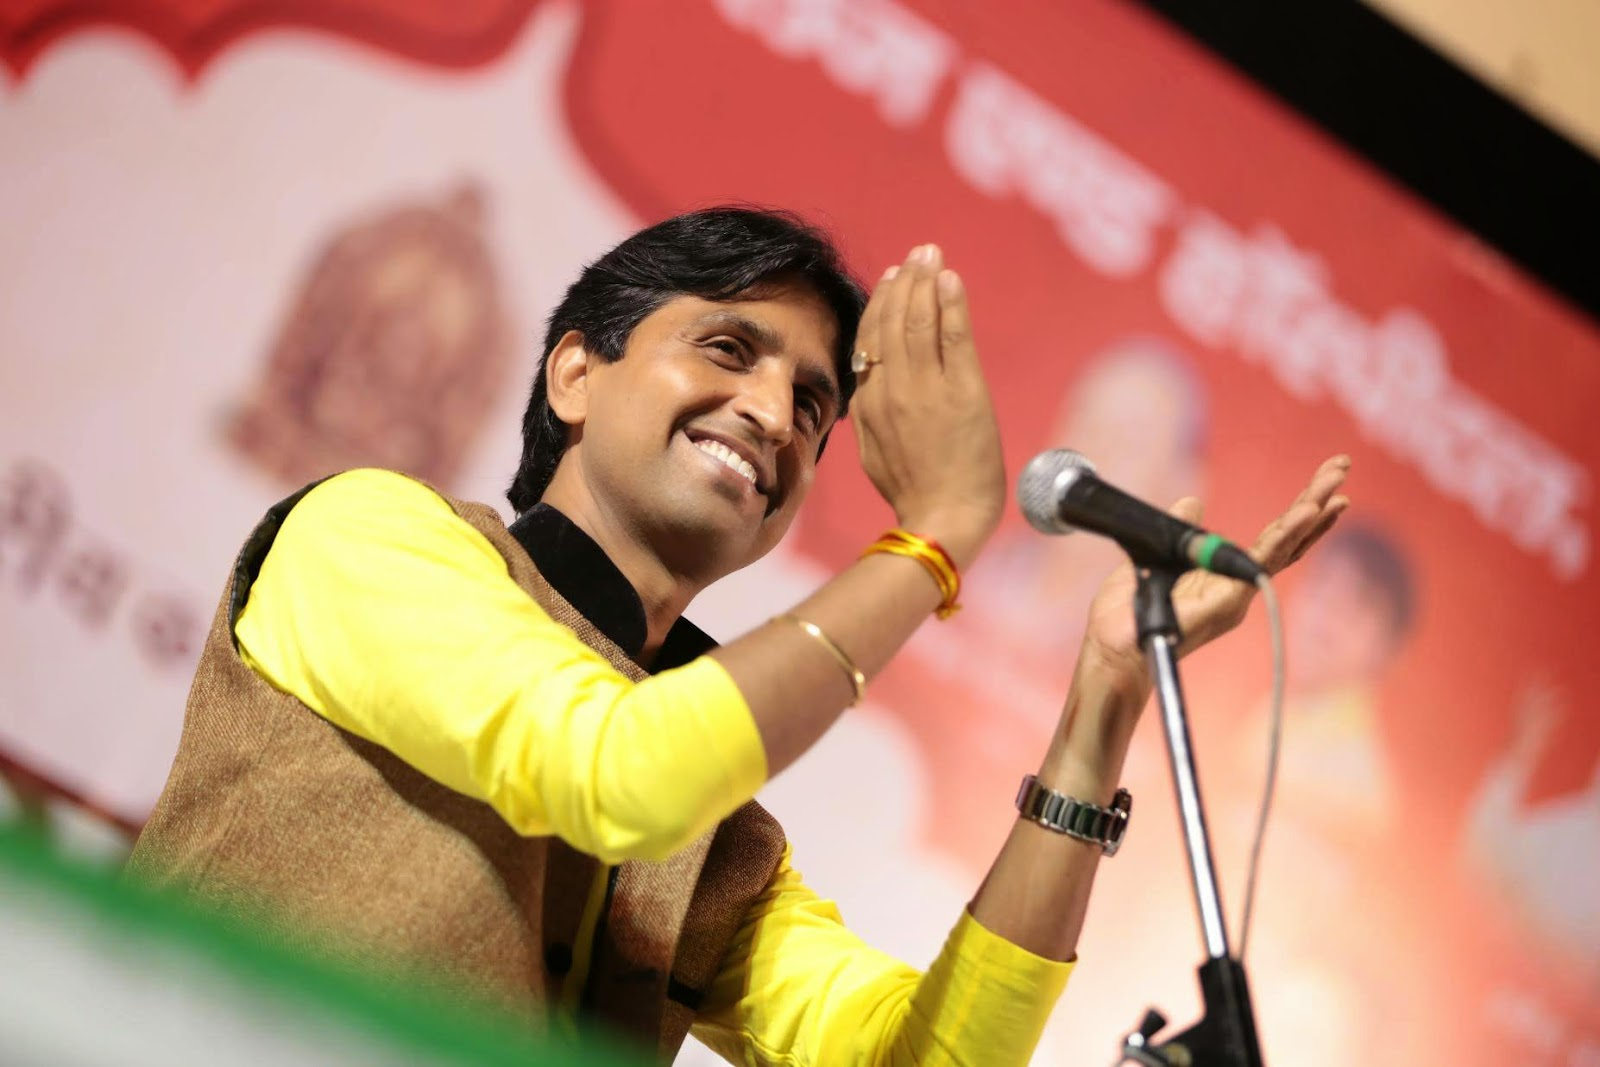 kumar vishwas poems audio free download